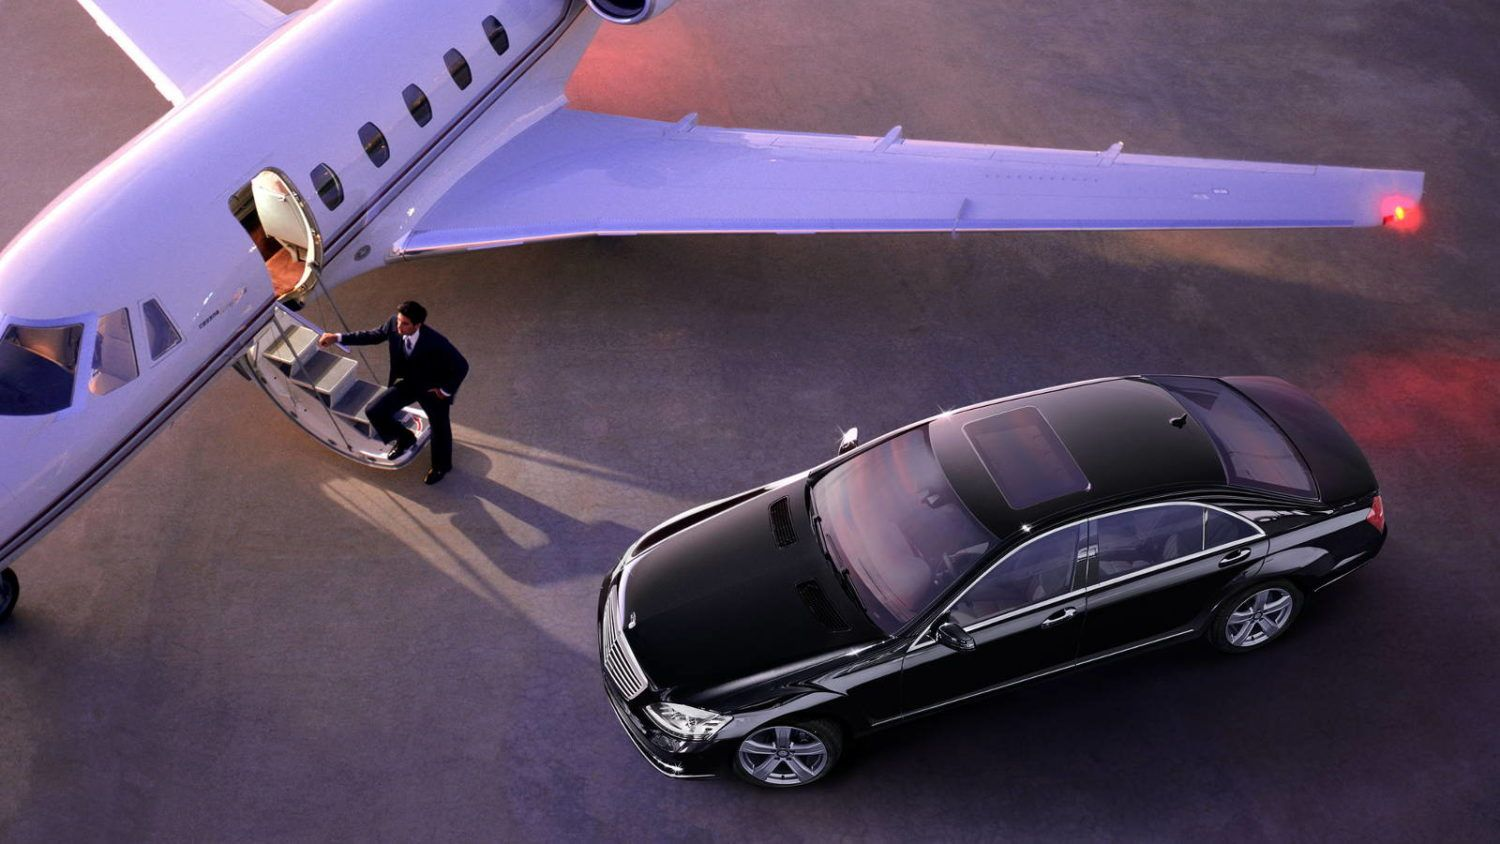 Jockey Limo Service is one of the top Limo Service Boston